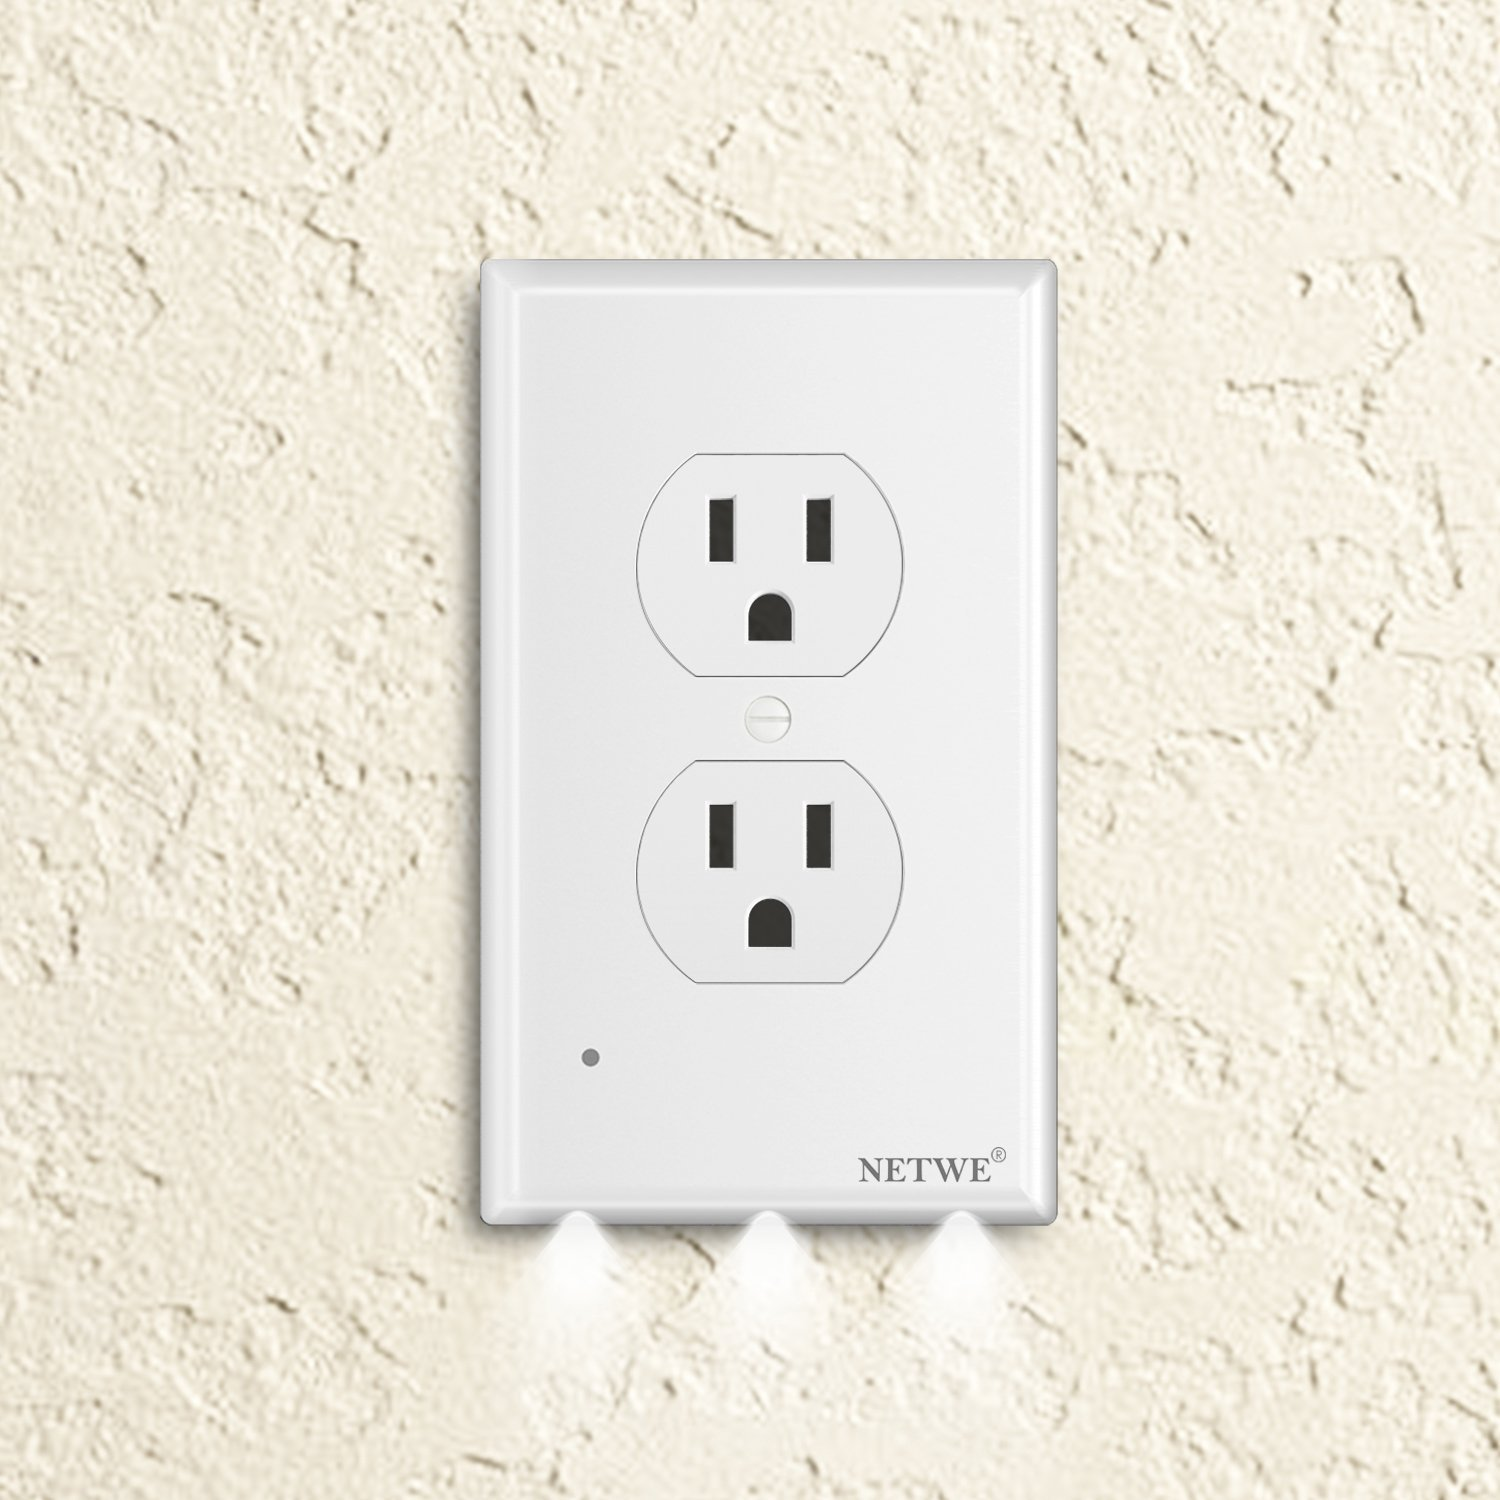 hight resolution of duplex outlet cover guidelight cover plate outlet wall plate cover with led night lights automatic brightness sensors no batteries or wires installs